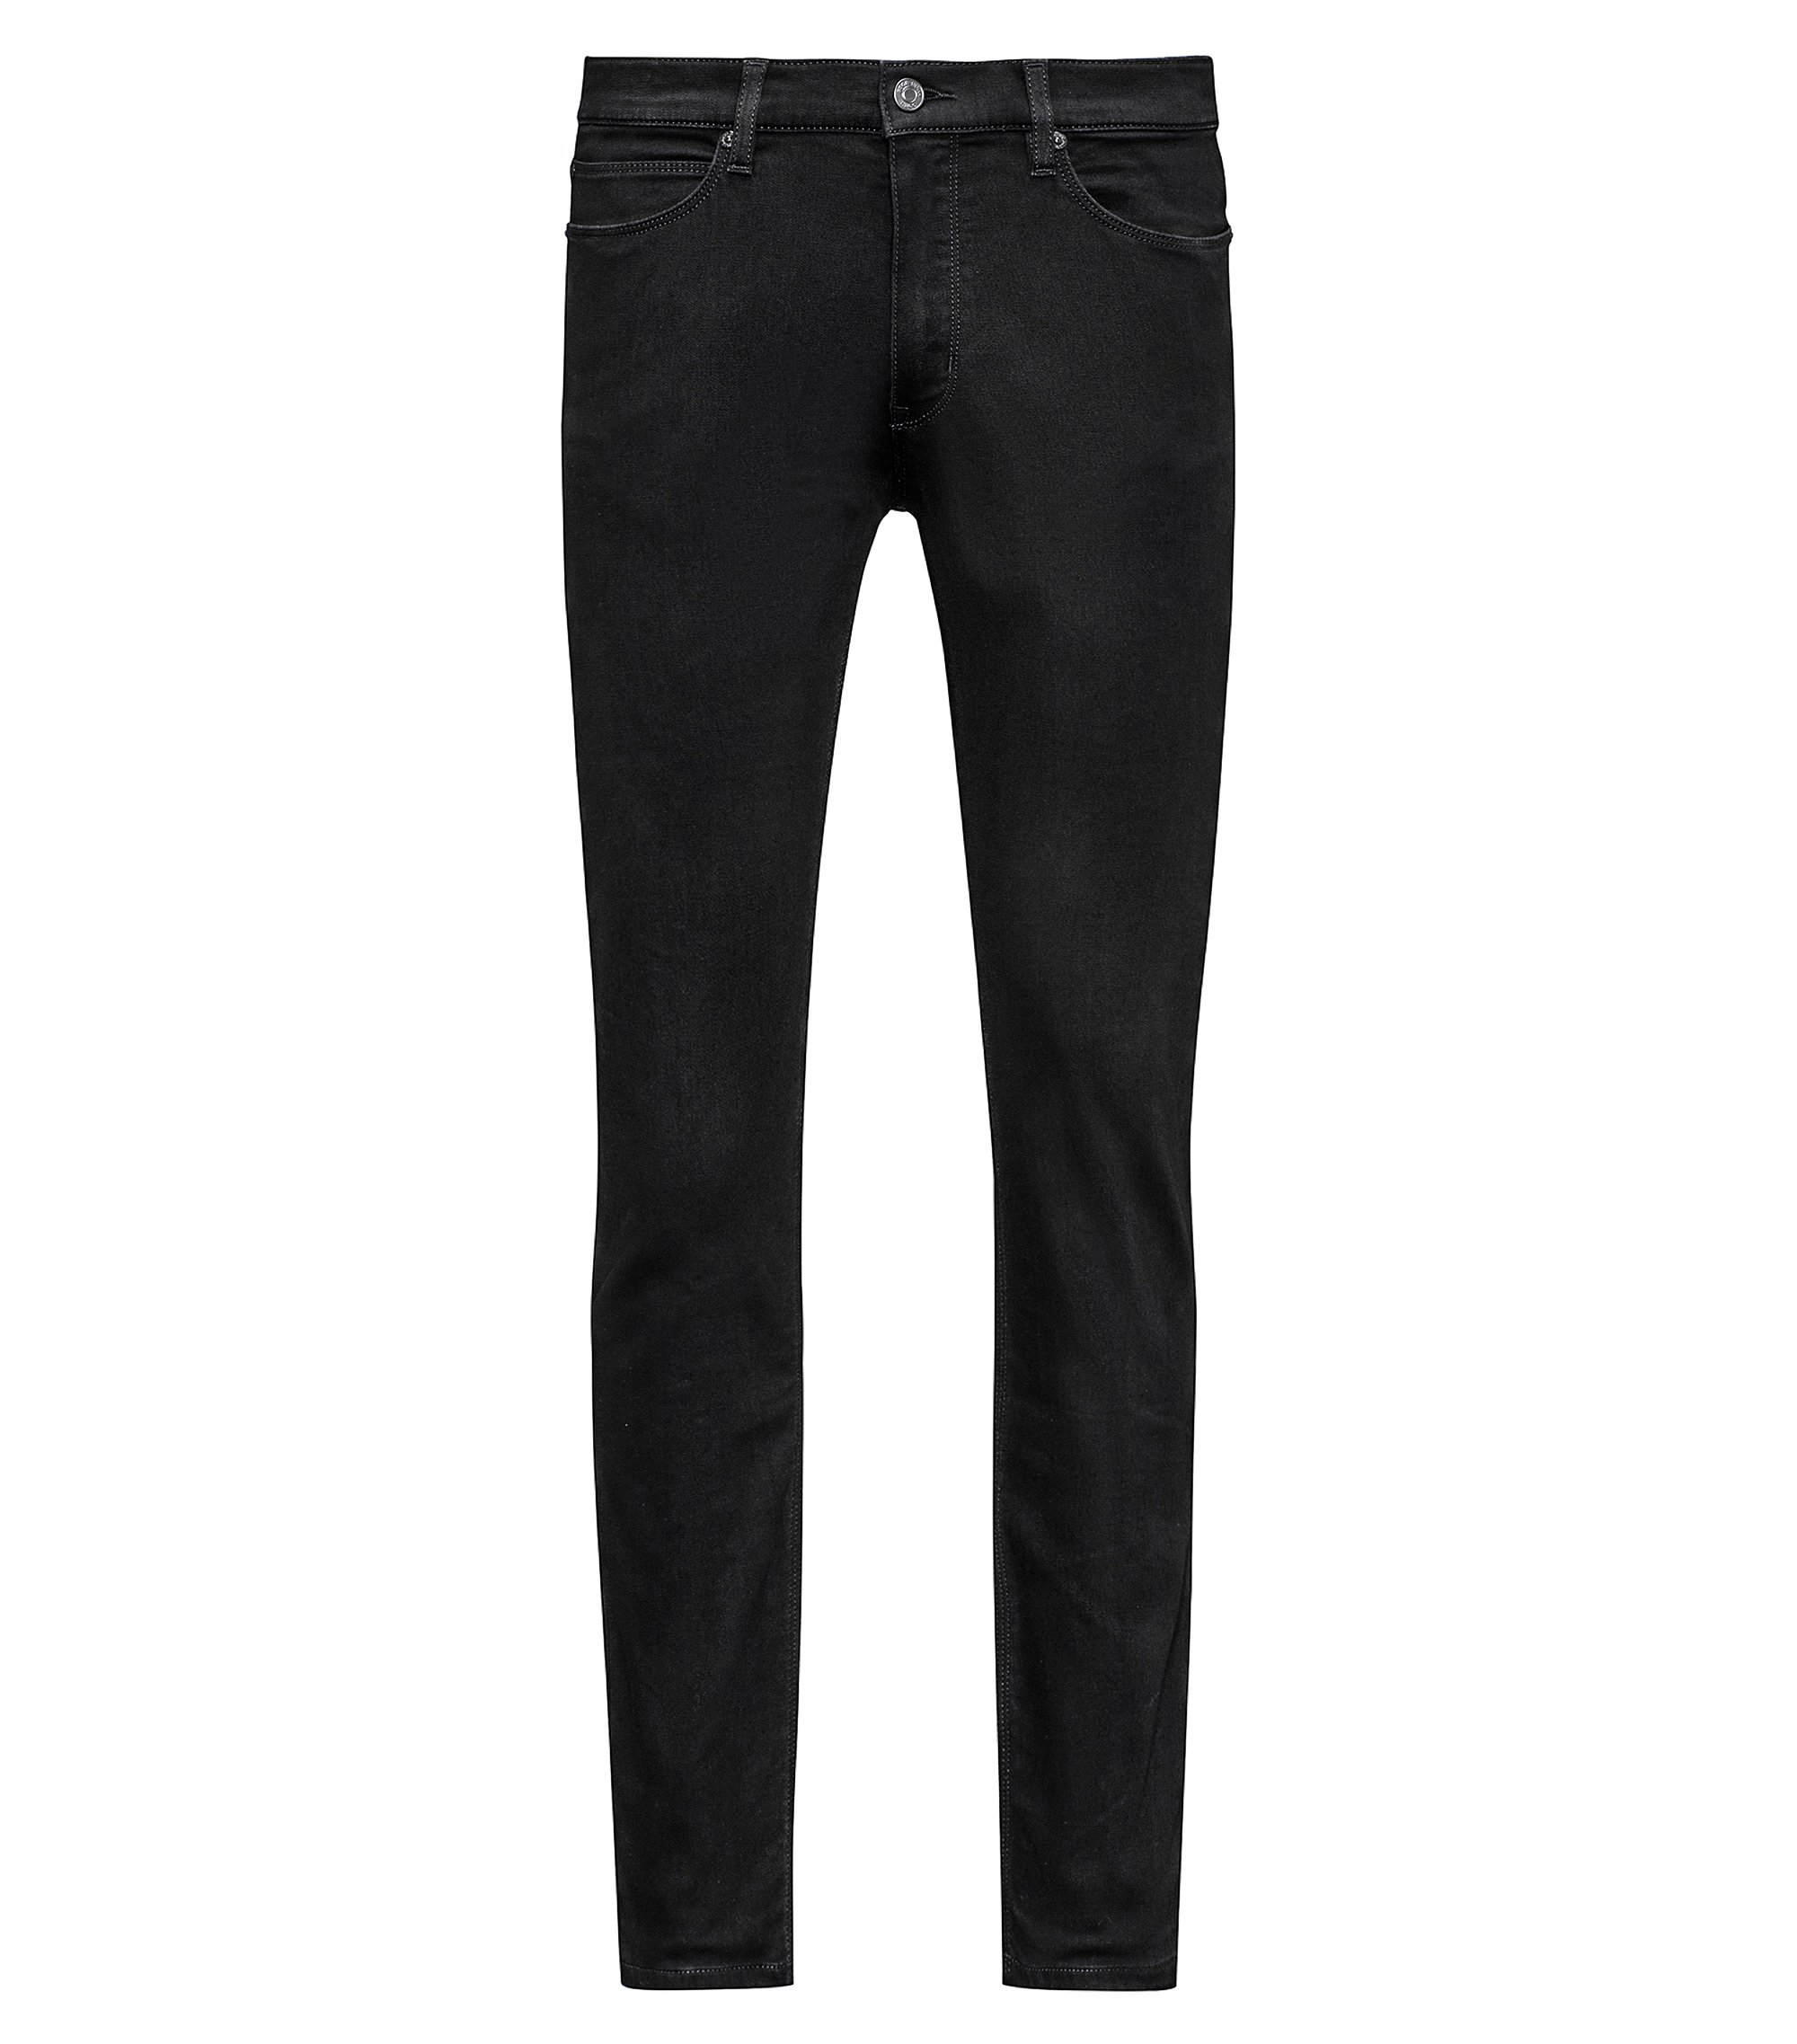 Stretch Cotton Blend Pant, Skinny Fit | HUGO 734, Black